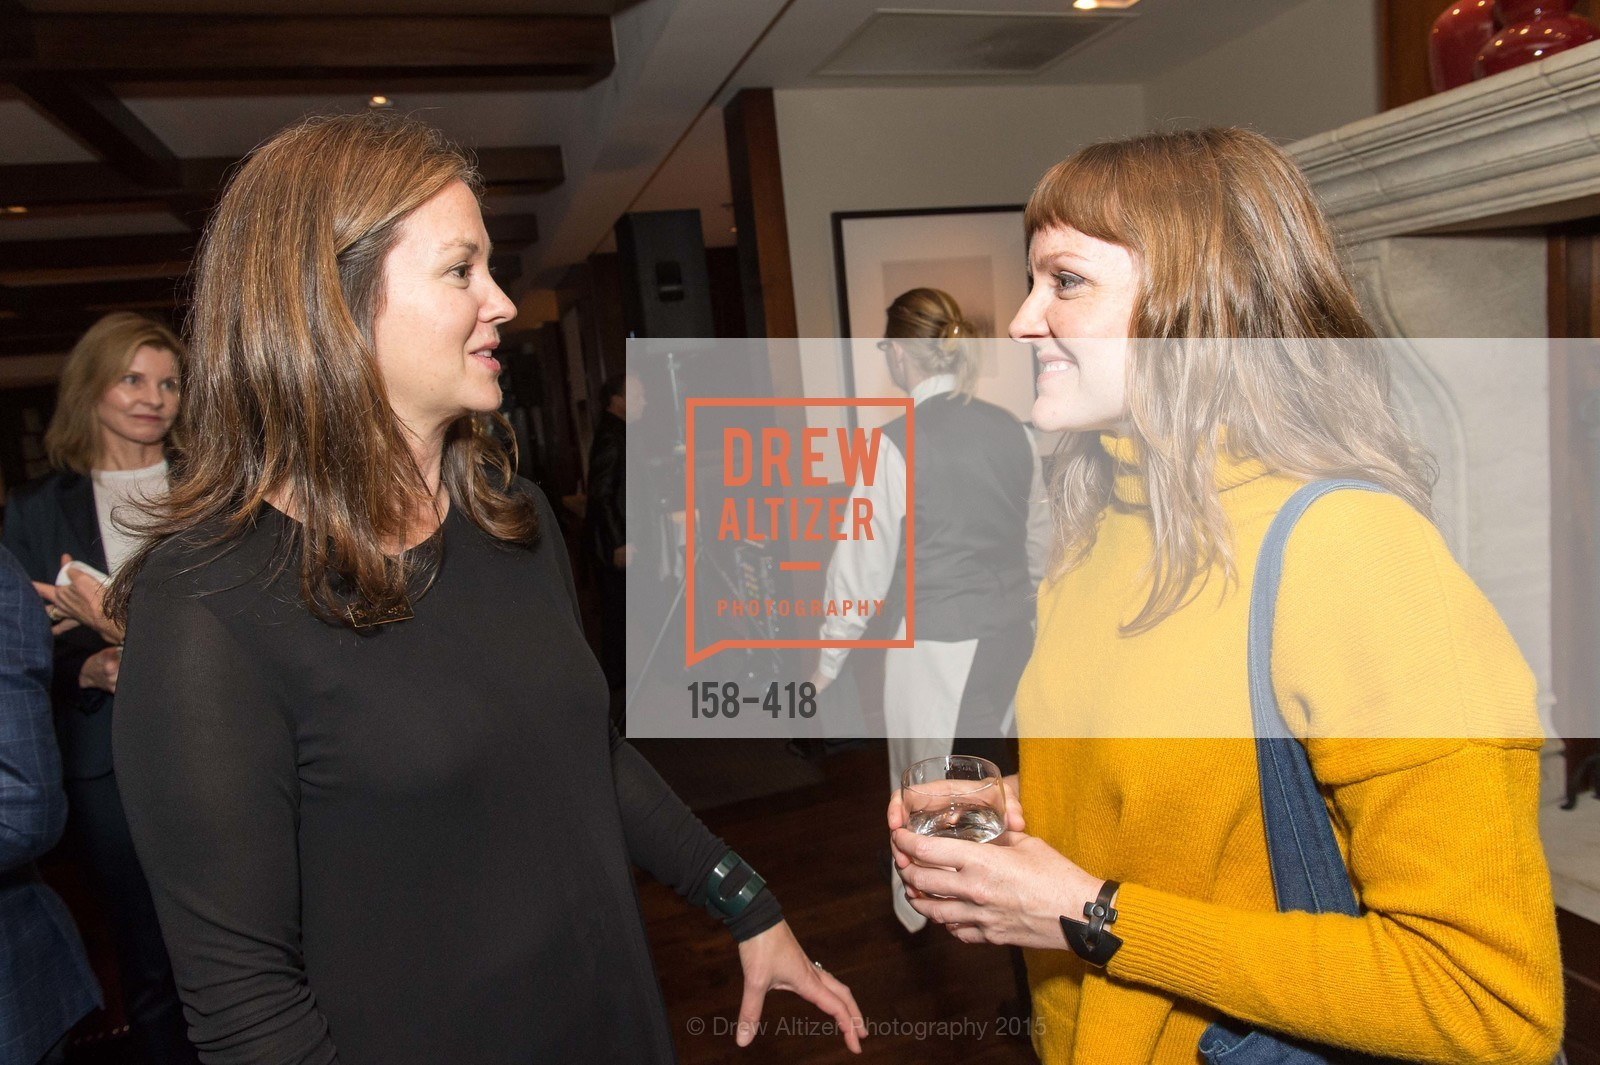 Sarah Shepard, Kristin Delzell, Artsy and Sotheby's Village Pub Dinner, Village Pub, October 27th, 2015,Drew Altizer, Drew Altizer Photography, full-service agency, private events, San Francisco photographer, photographer california